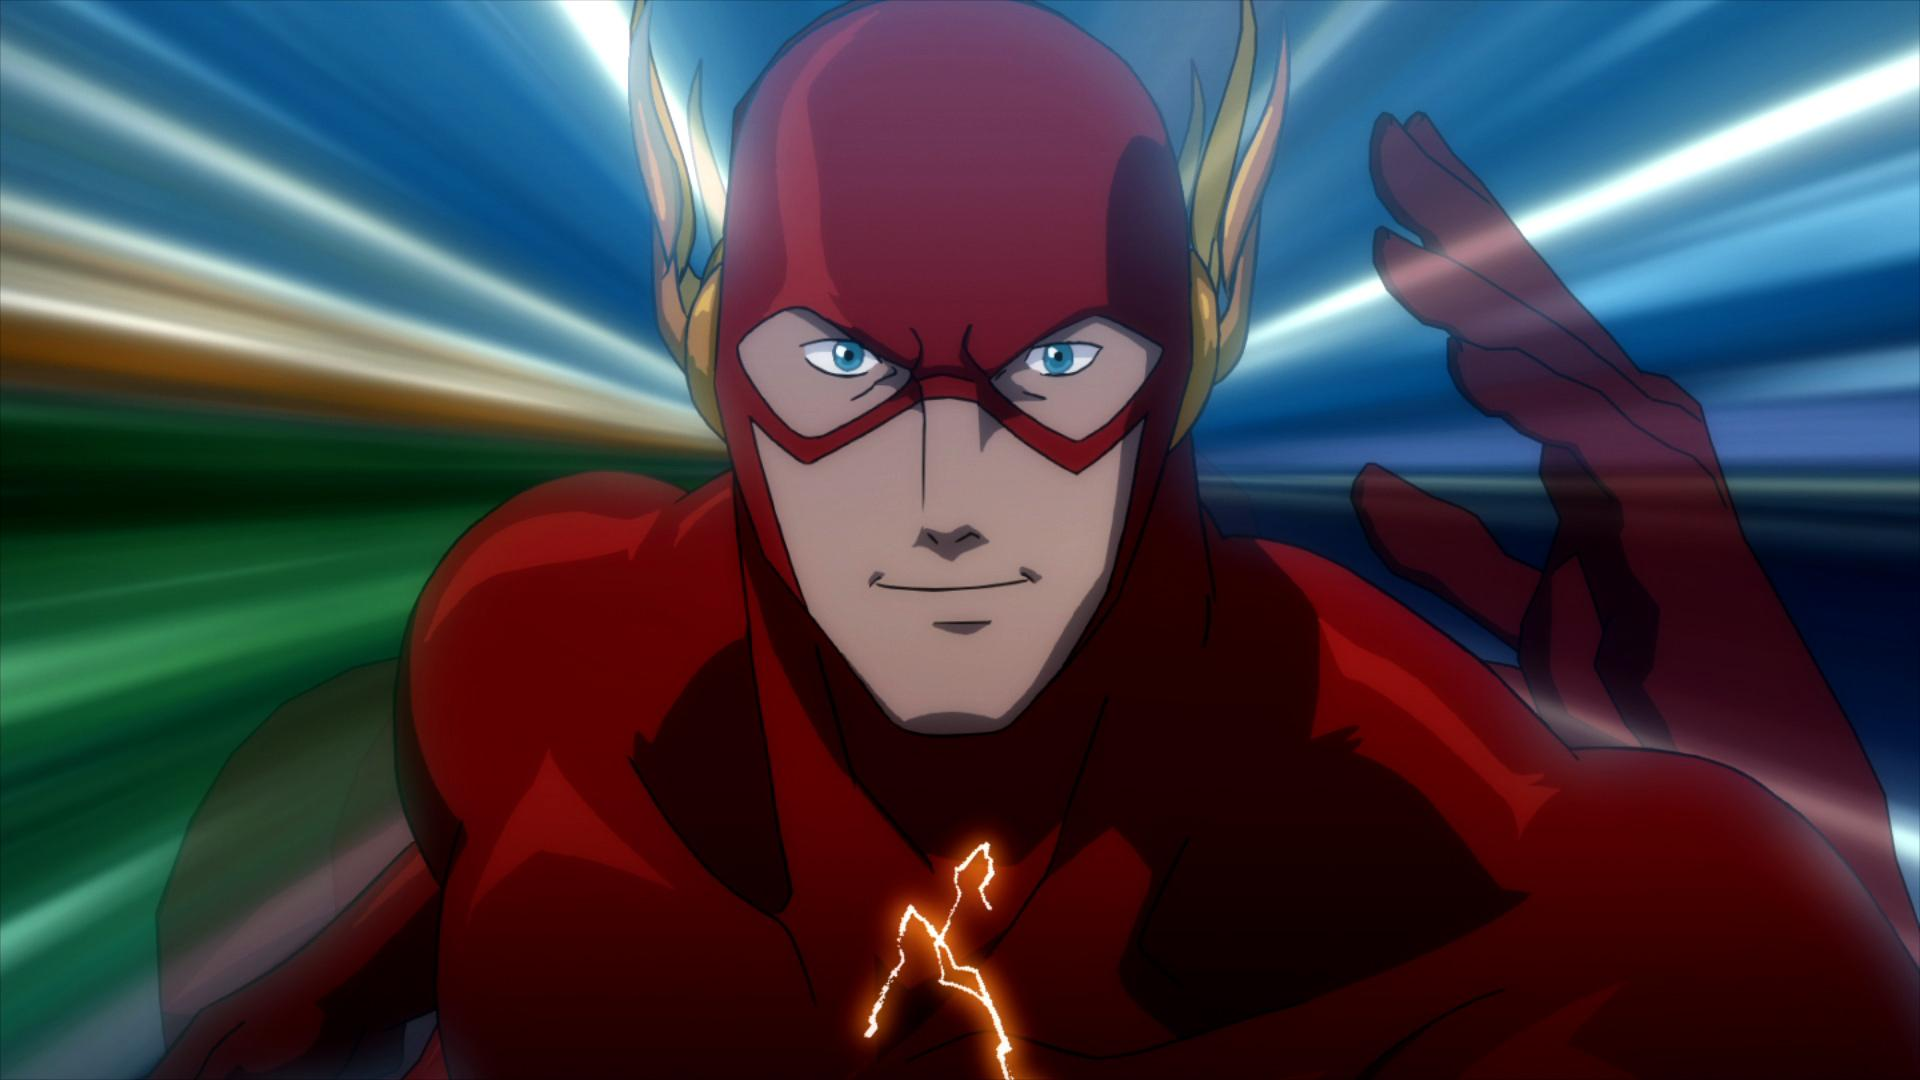 Justice League The Flashpoint Paradox wallpapers HD quality